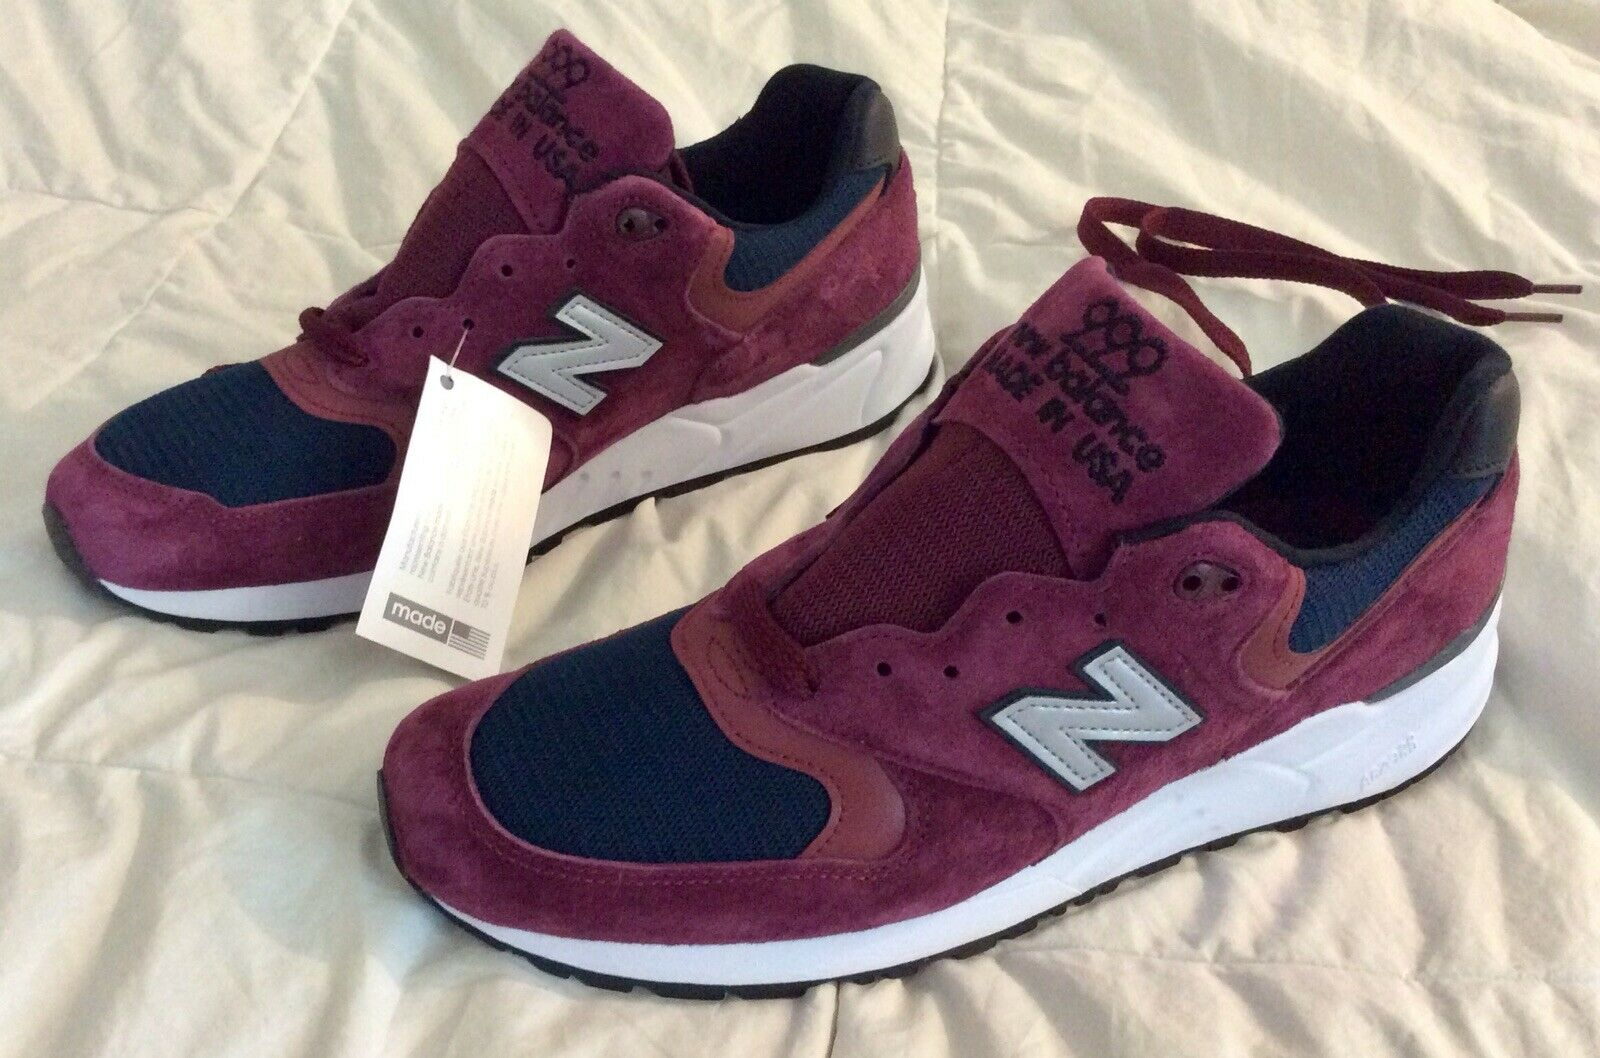 180 NEW BALANCE 999 Maroon Navy Men's size 11 D MADE IN THE USA M999JTA 990